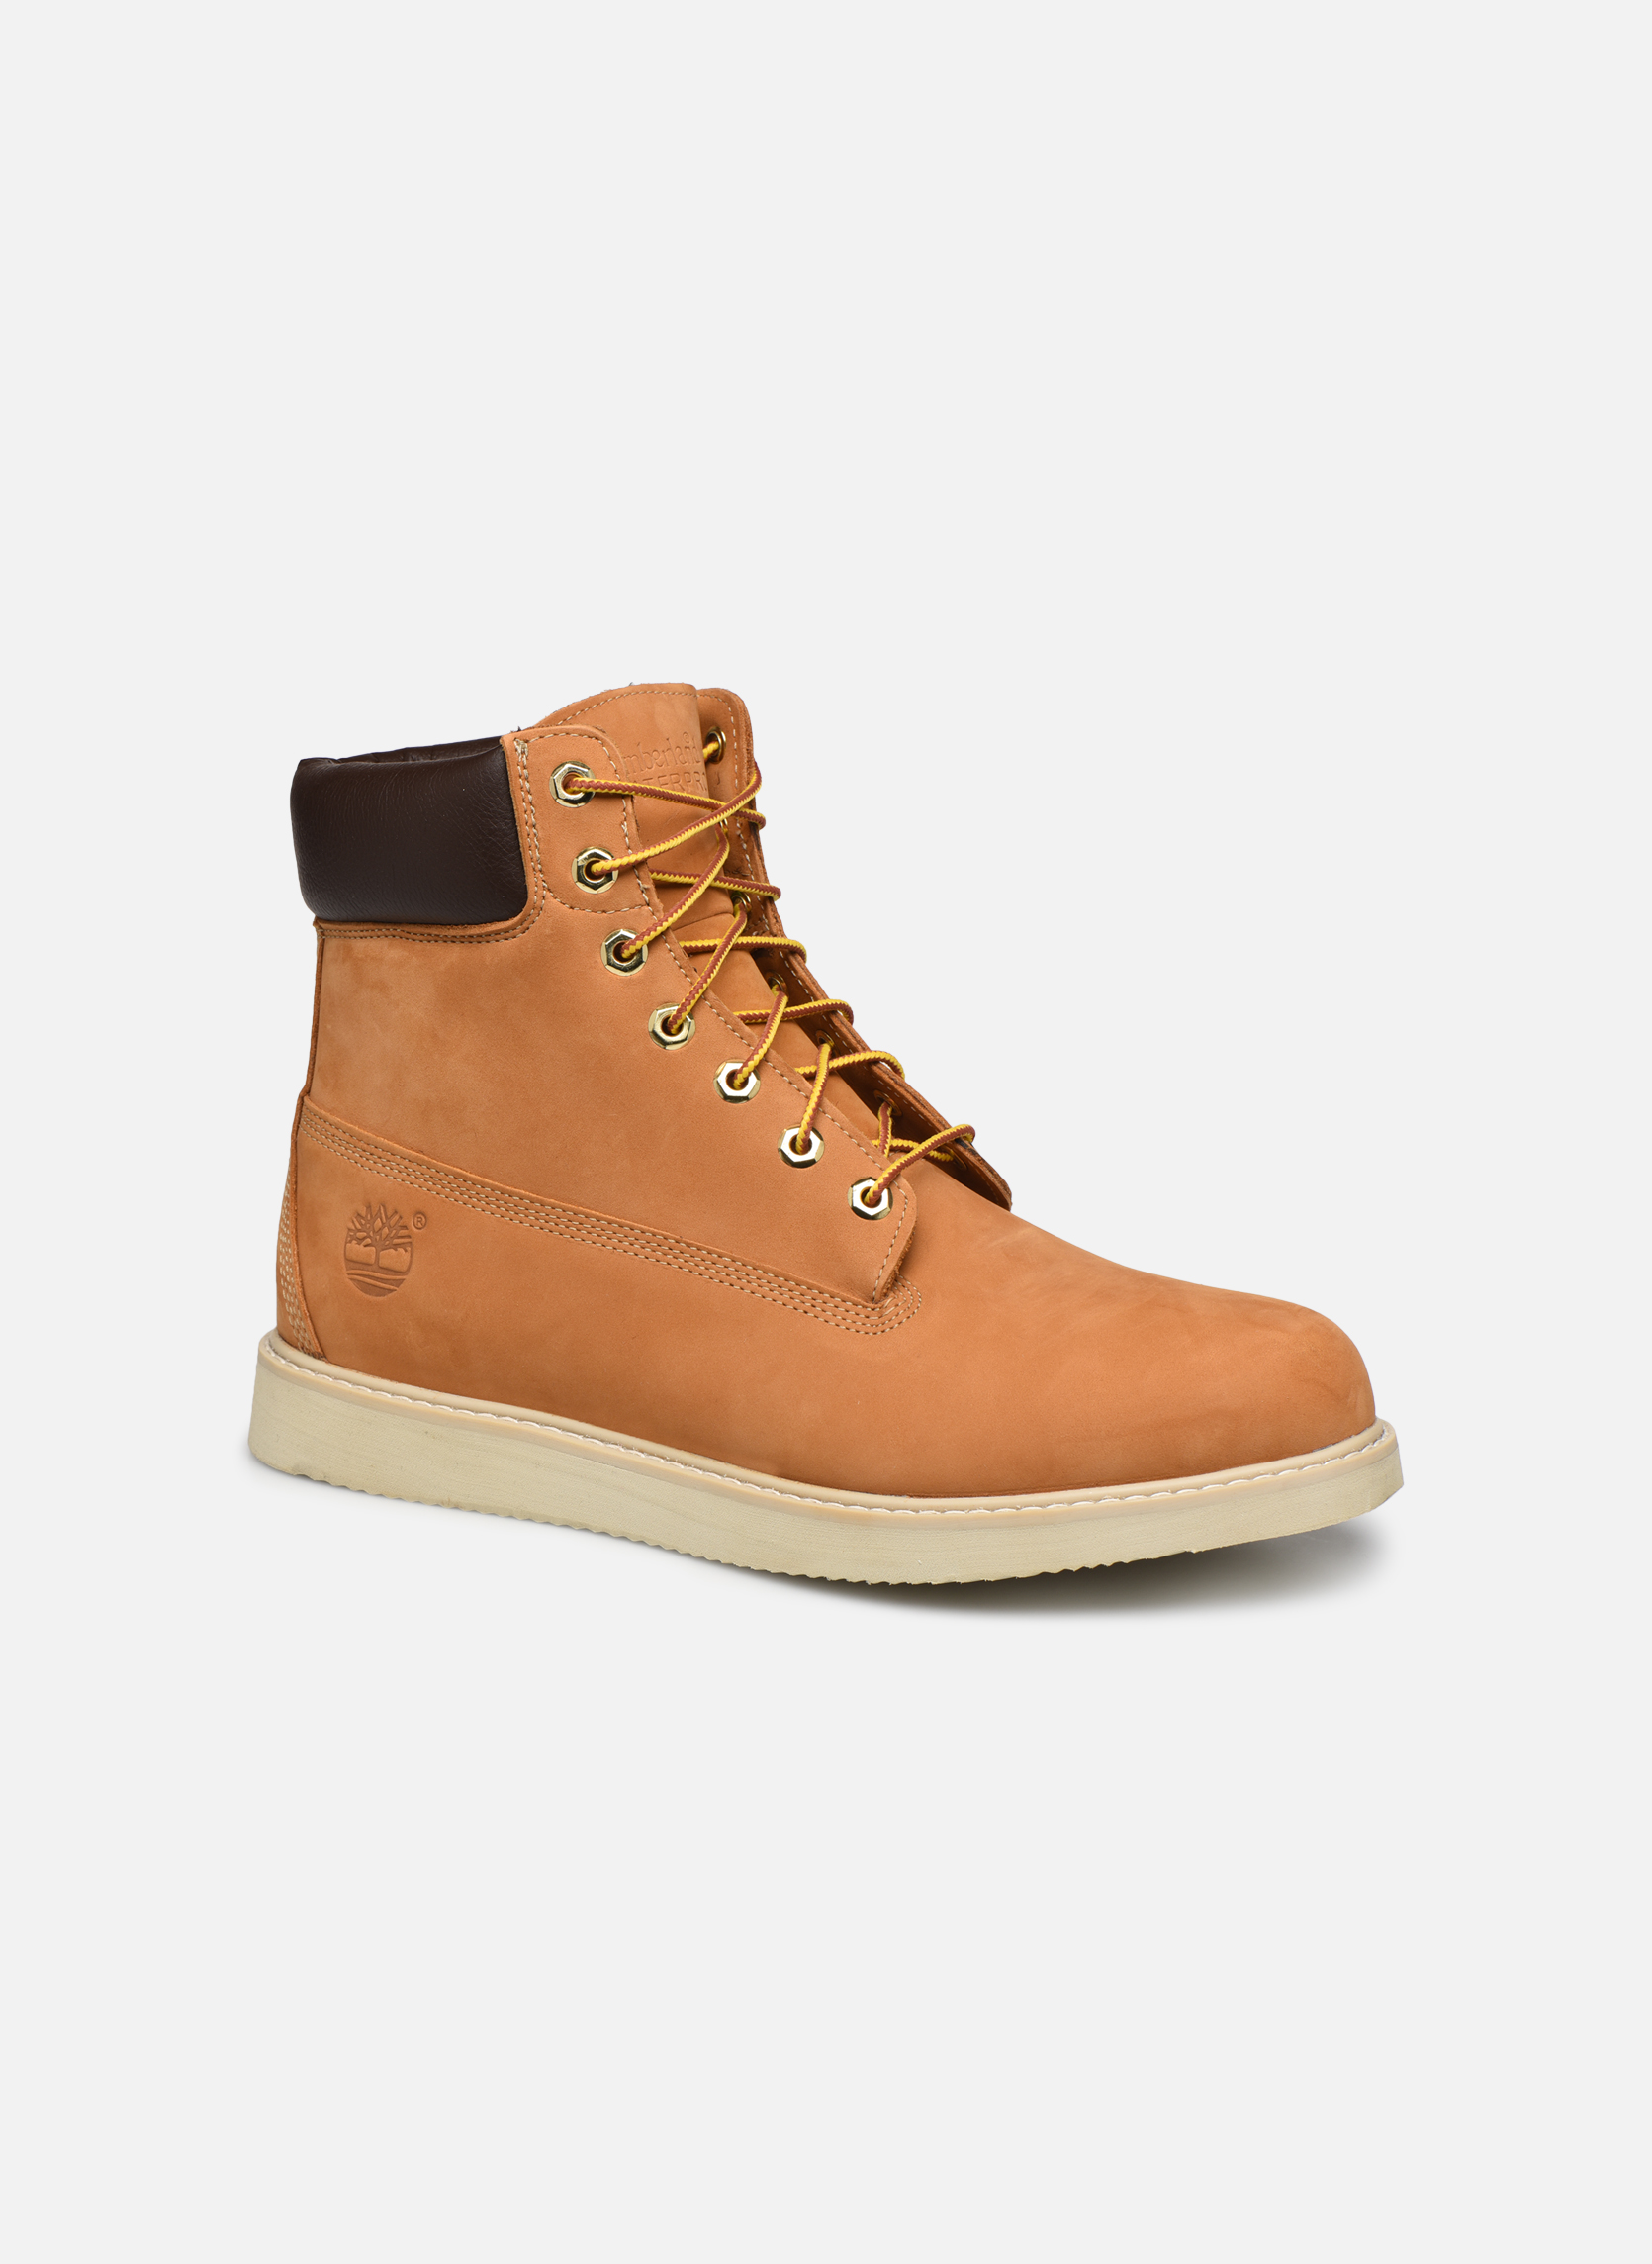 Bottines et boots Timberland 6 in wedge Marron vue détail/paire